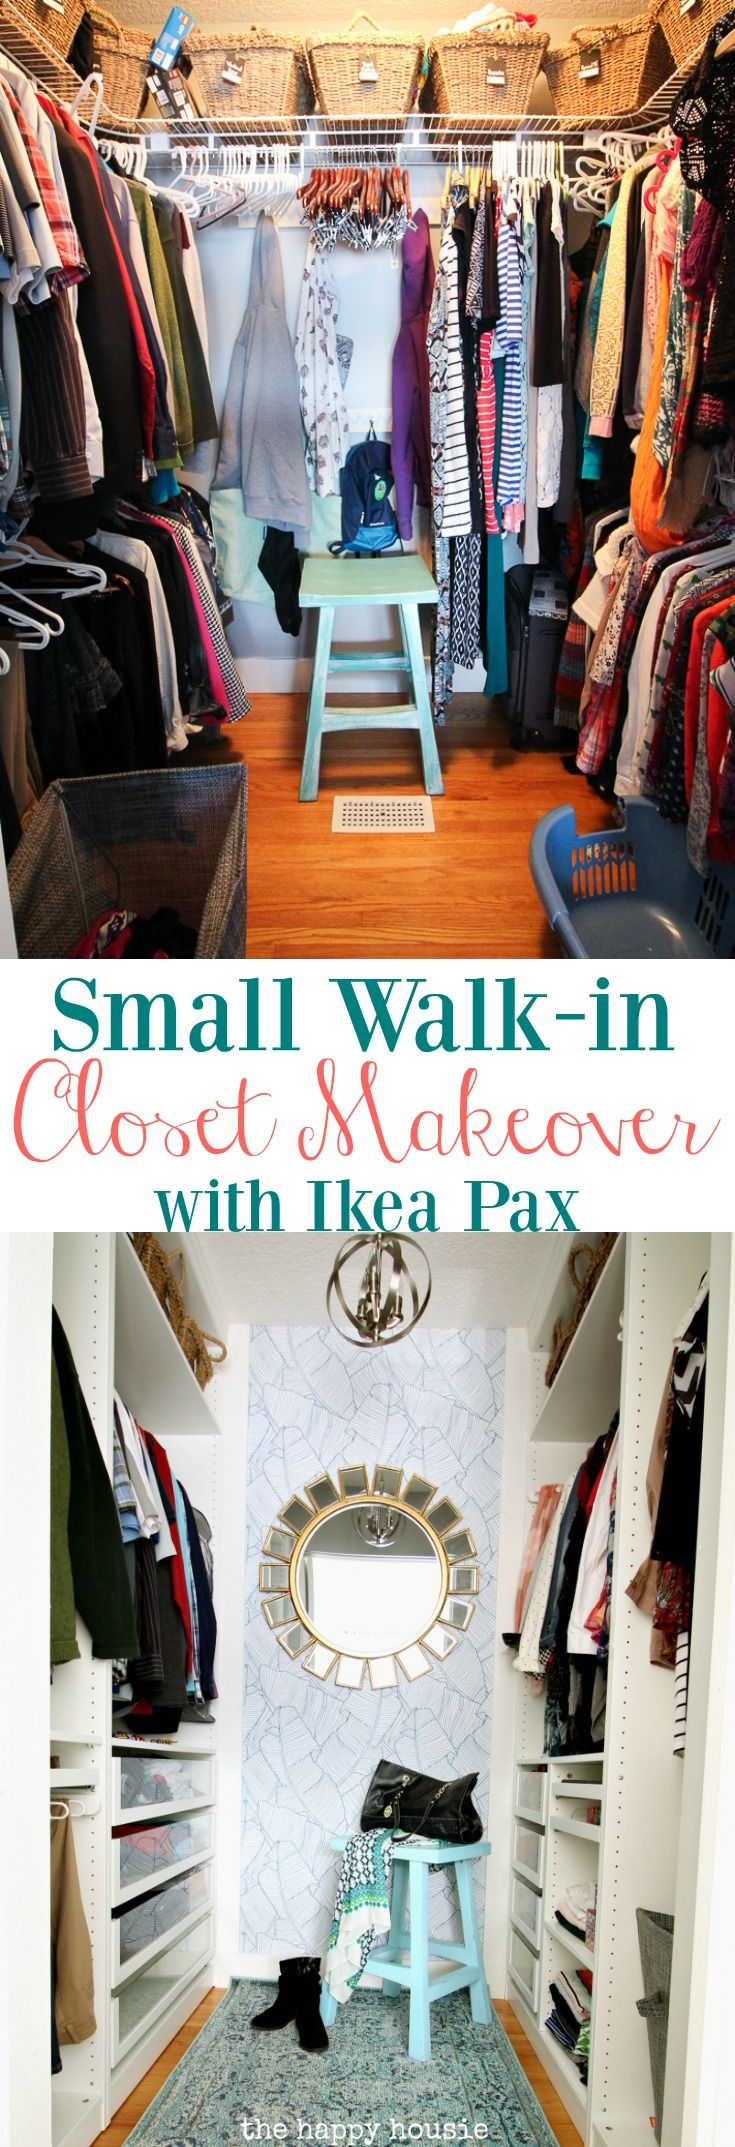 small walkin closet makeover reveal with ikea pax u0026 removable wallpaper